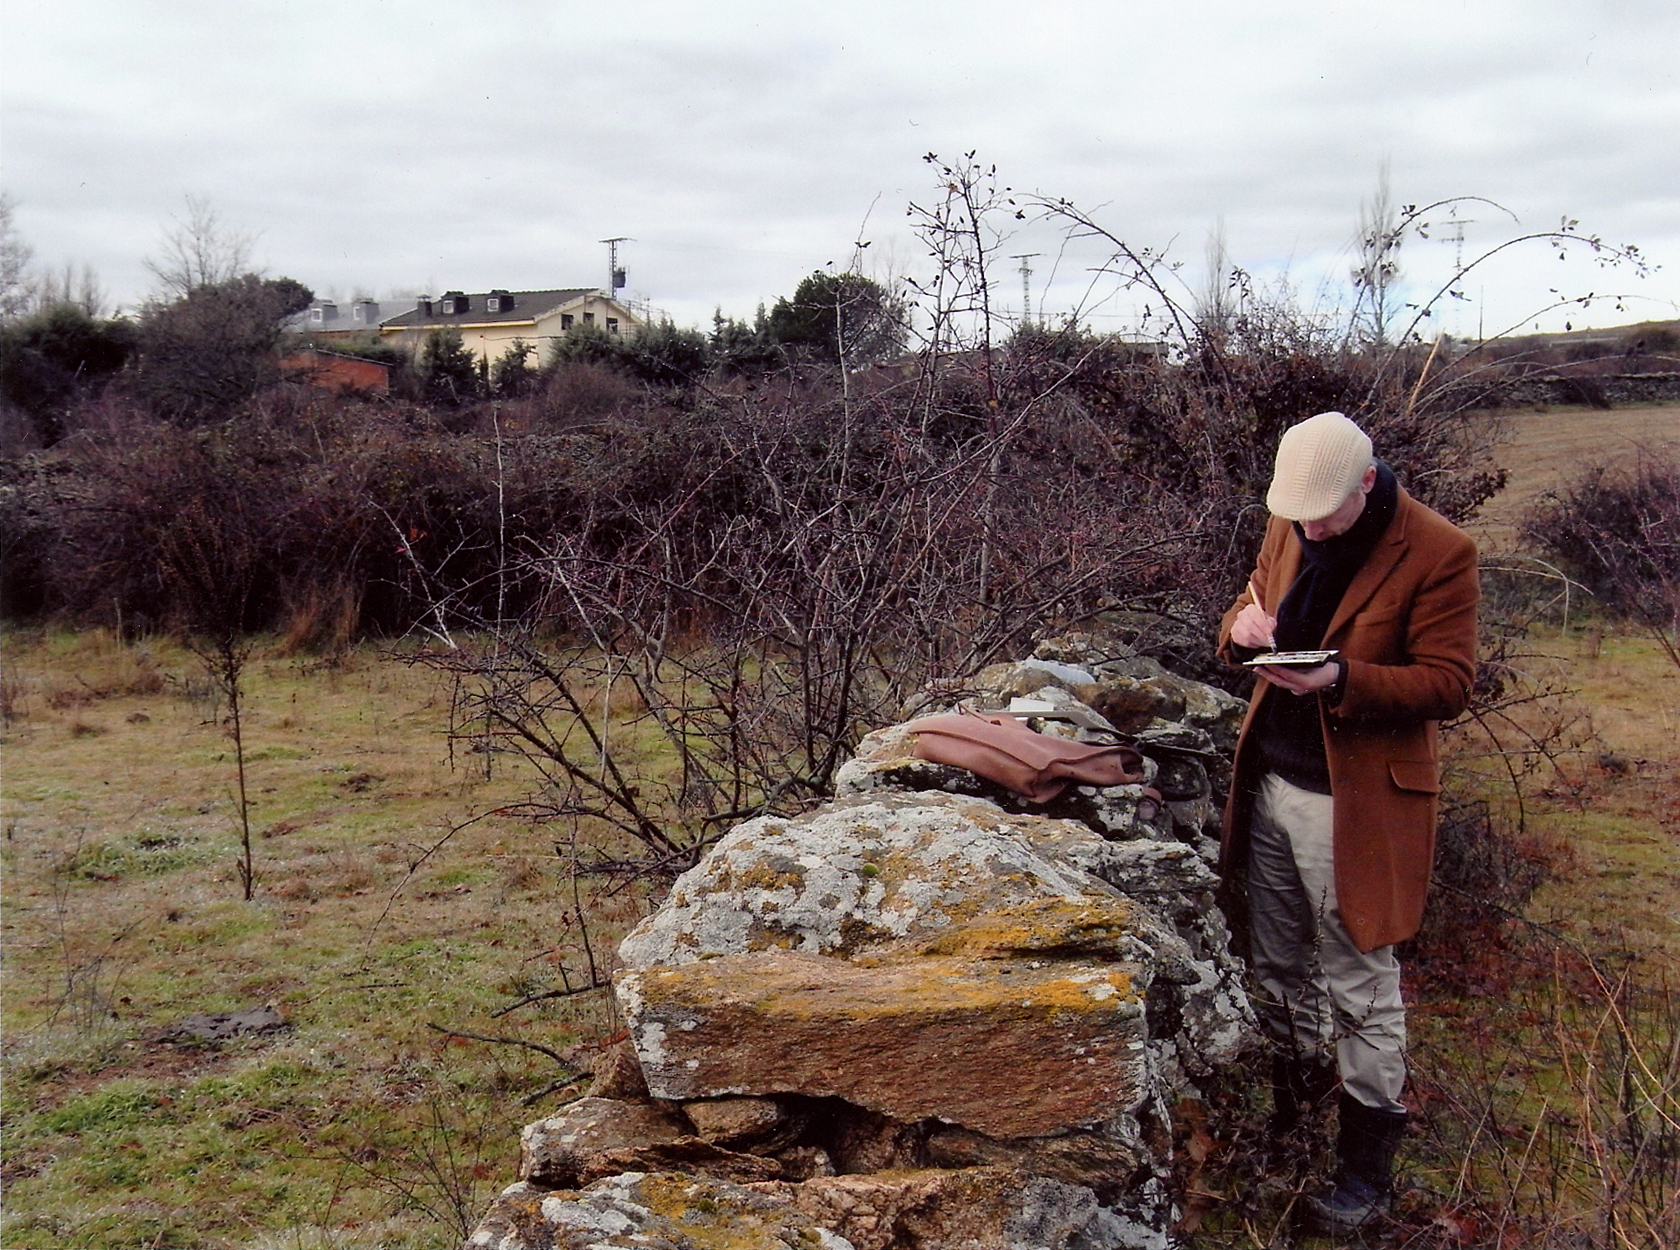 Photograph of watercolour artist John Haywood sketching plein air in the hills outside Madrid